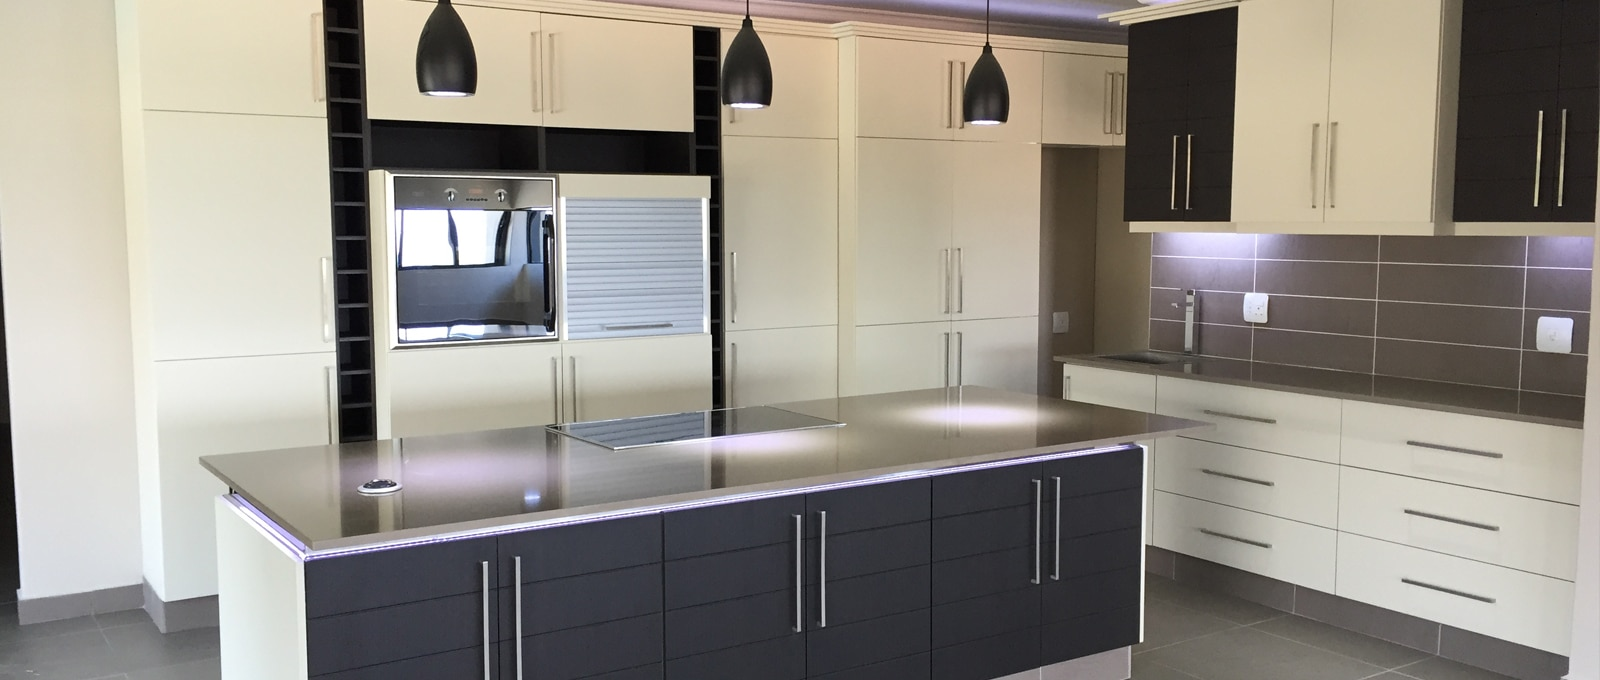 Kitchen cupboards installation